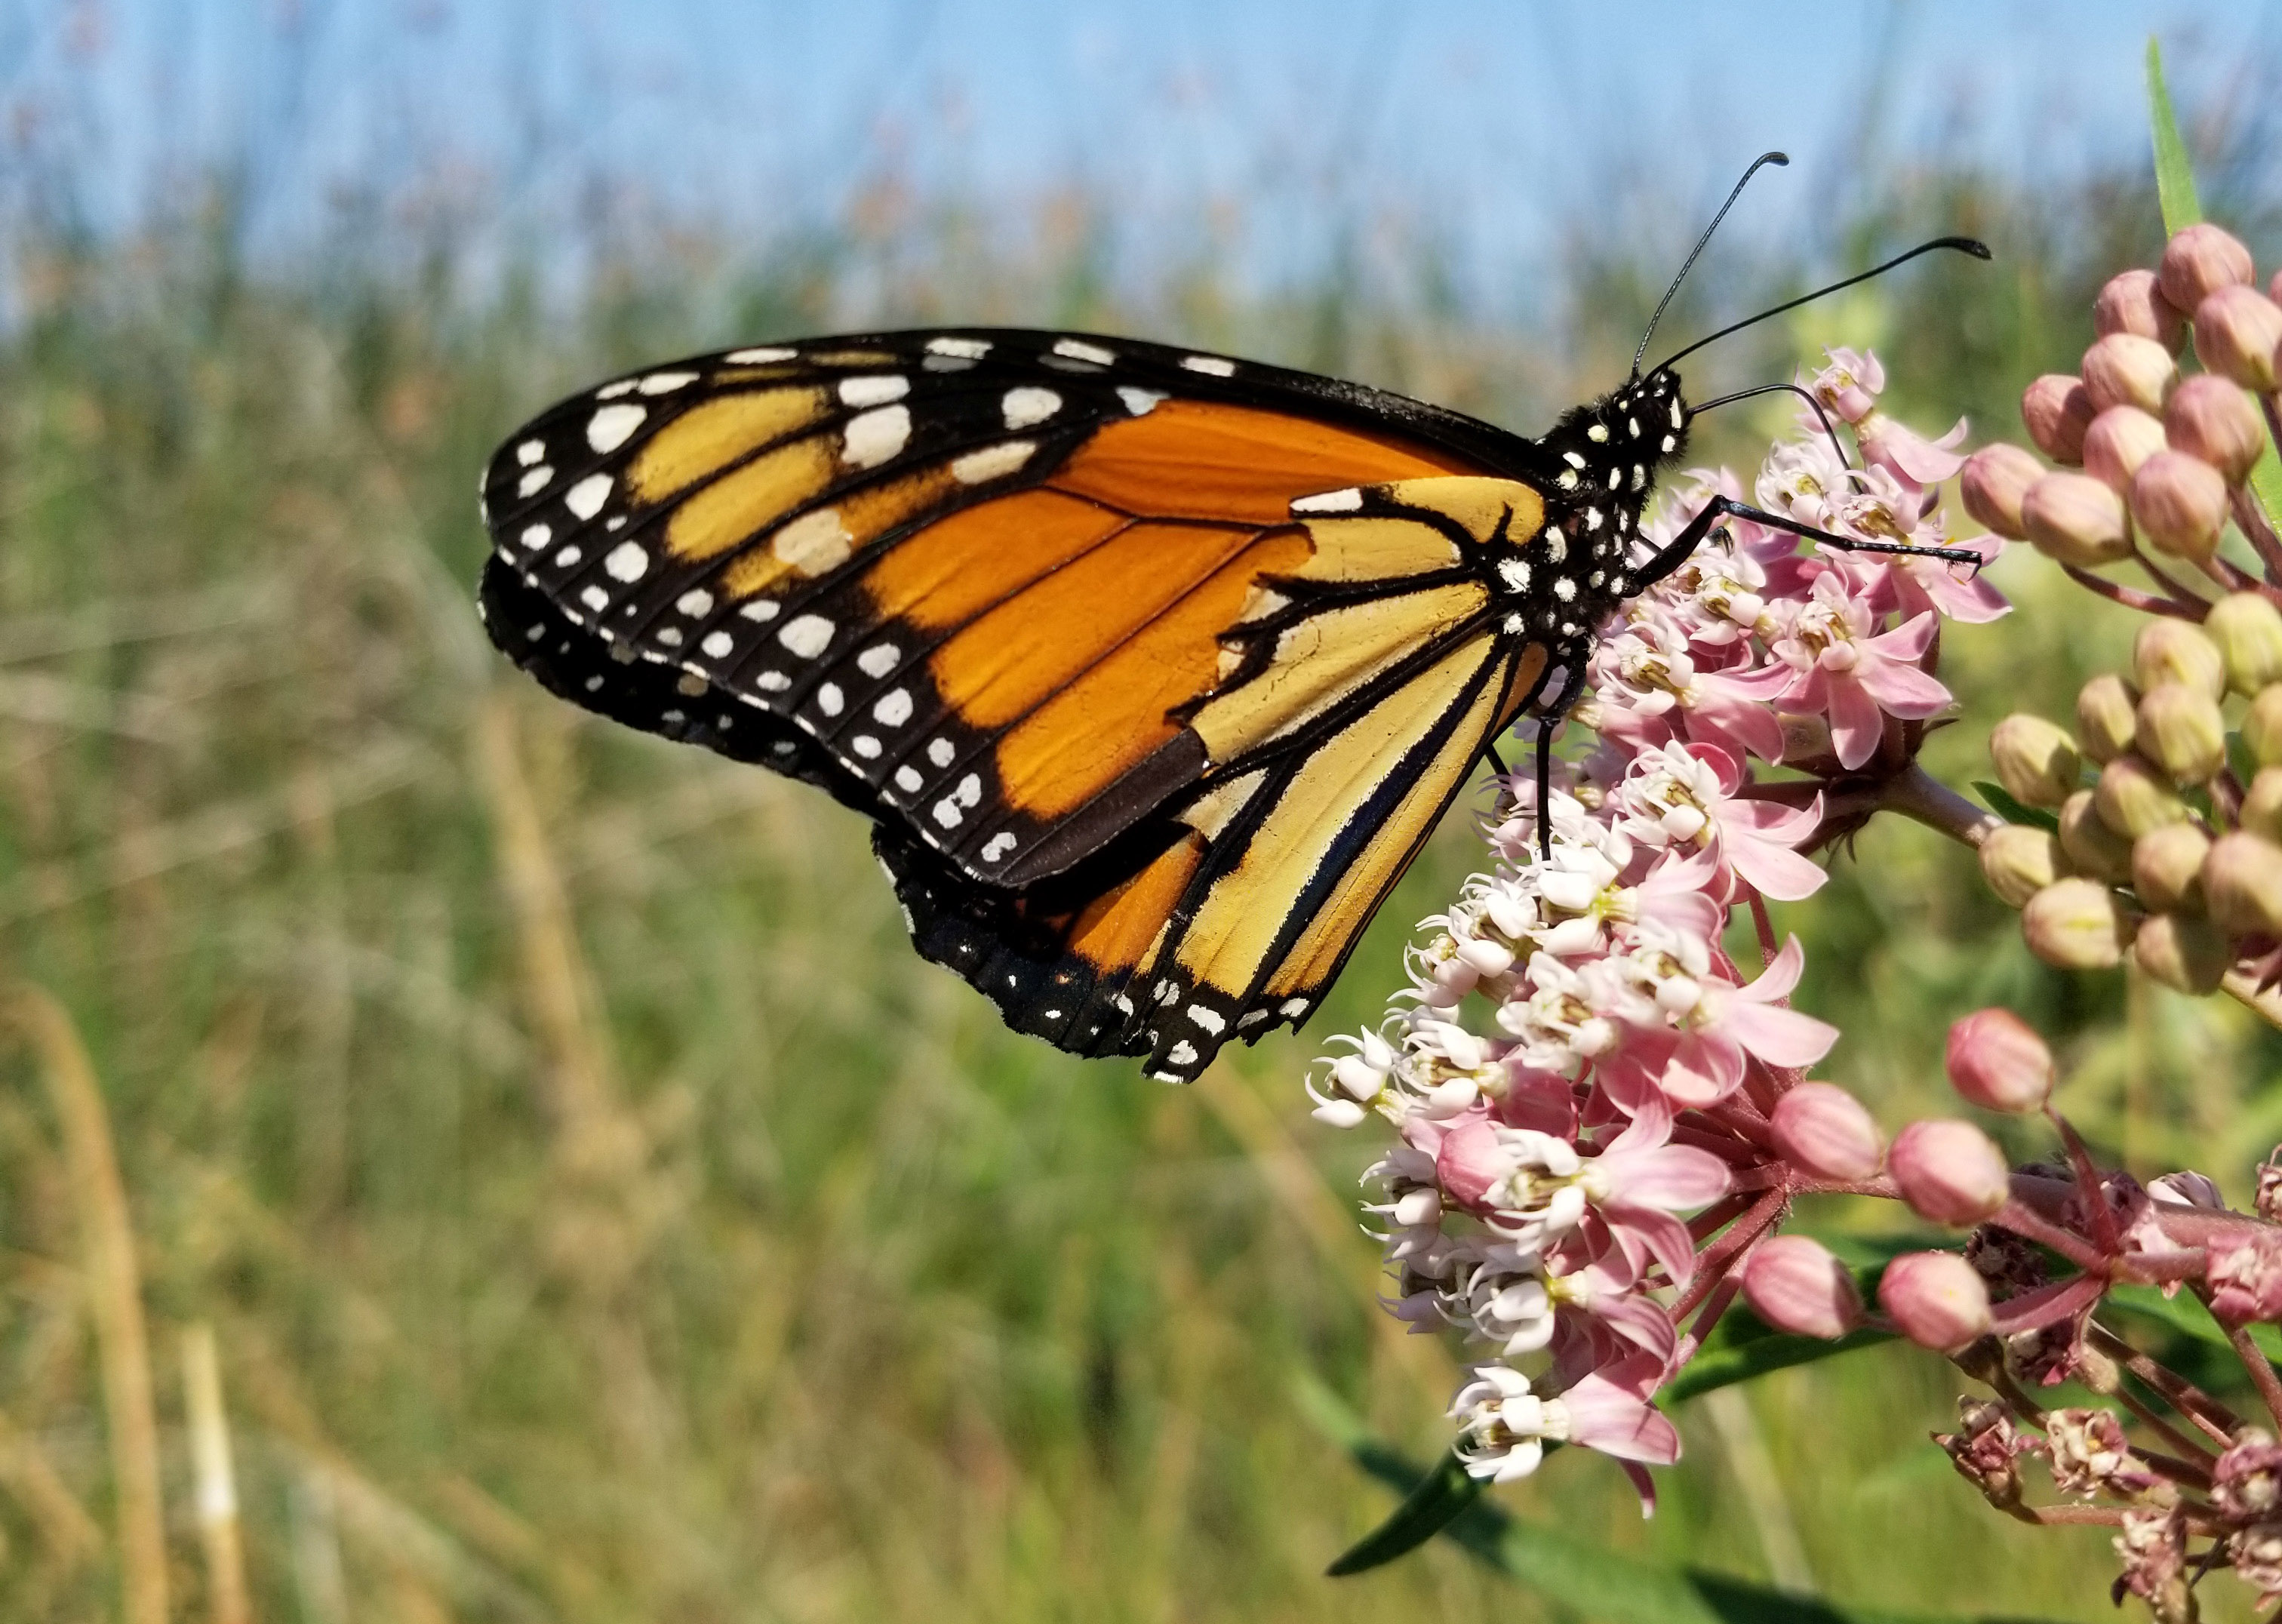 A monarch butterfly pauses to sip nectar from the pink flowers of swamp milkweed.